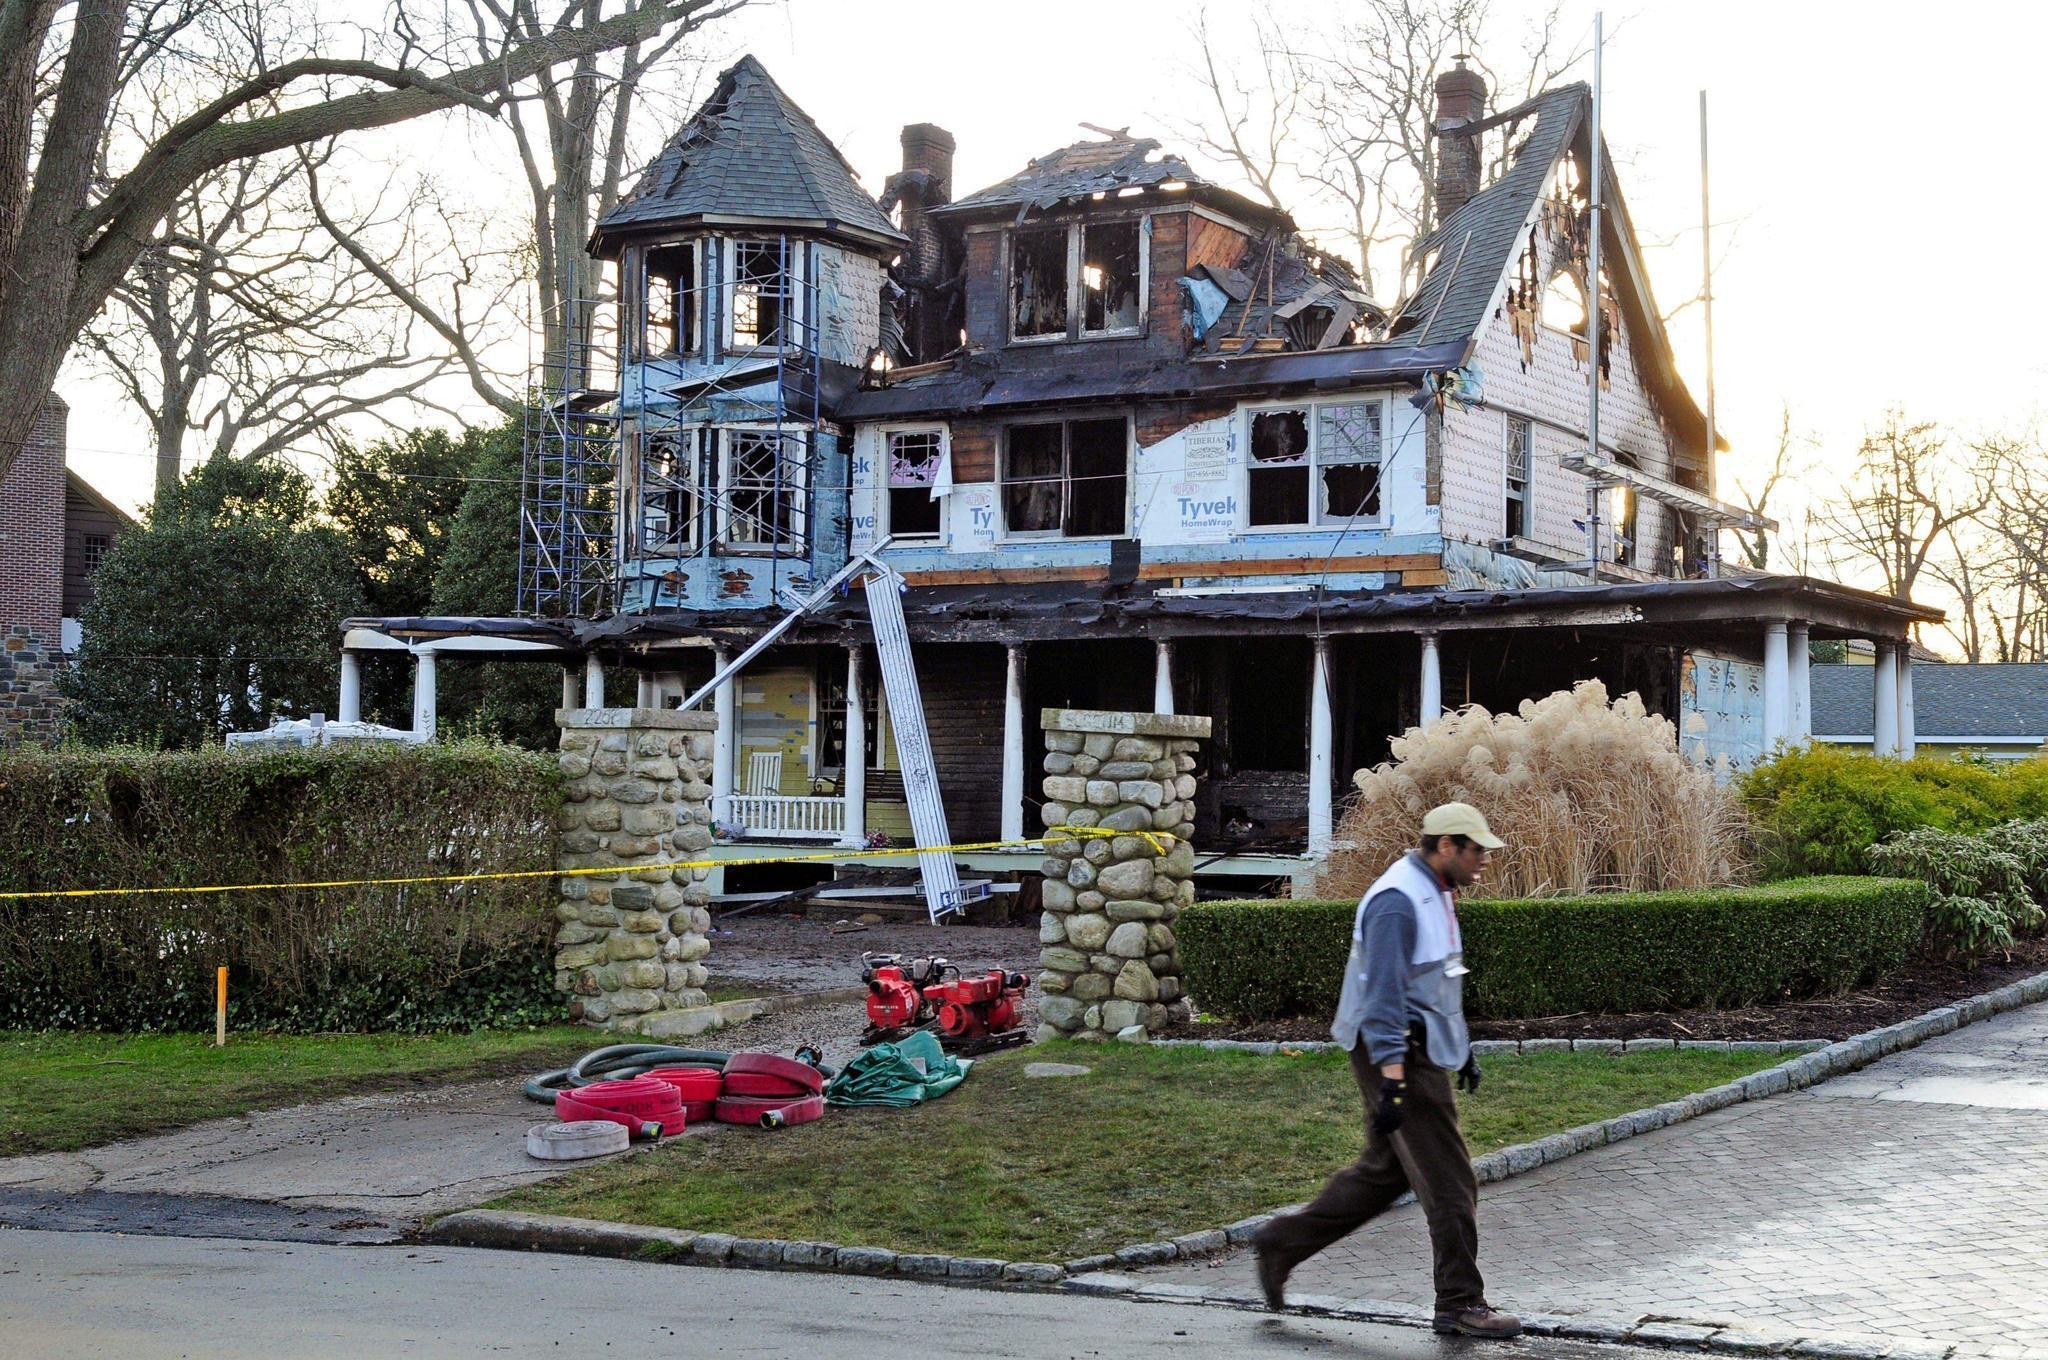 architect contractor in stamford christmas fire case agree to pay